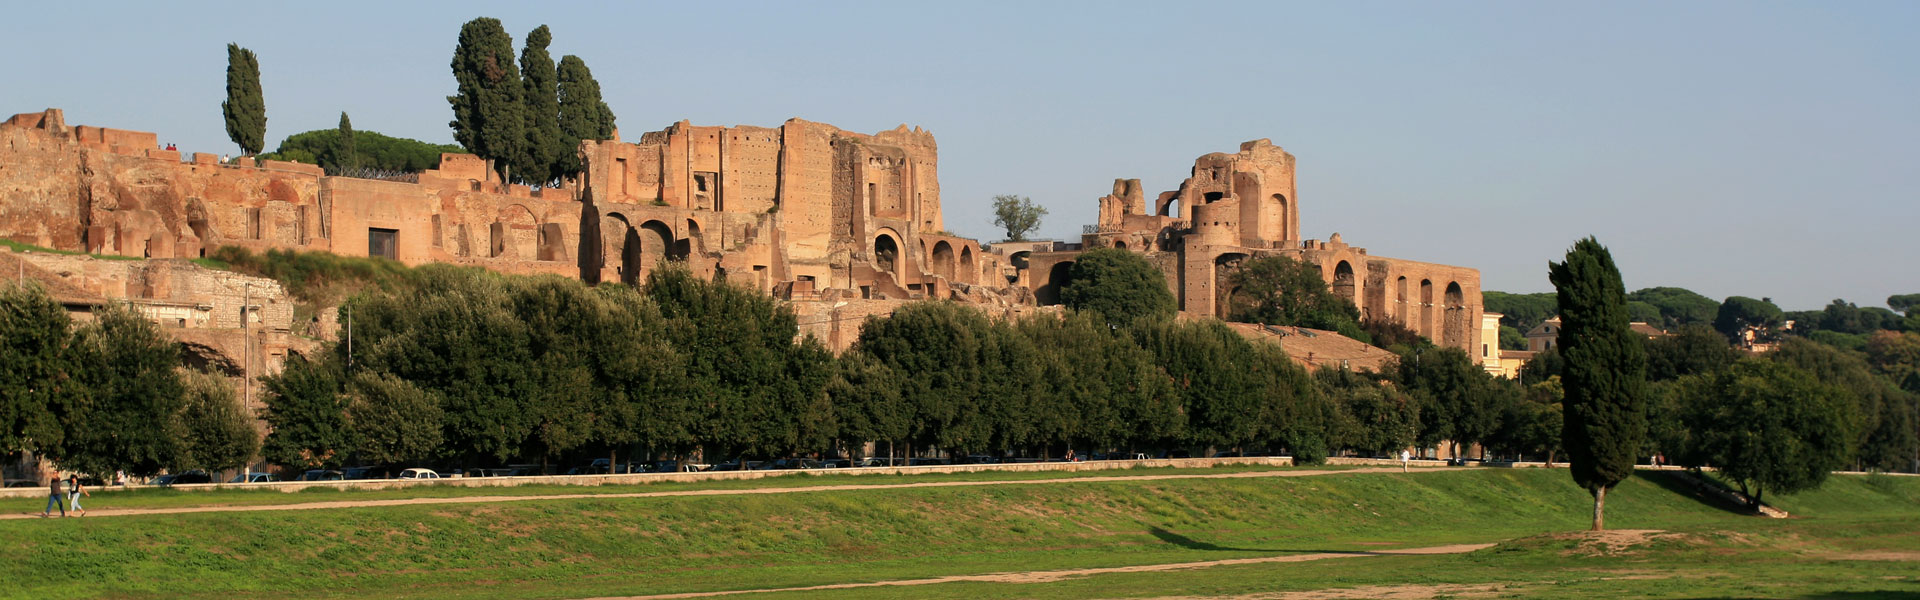 Afternoon view of the Circus Maximus, Rome